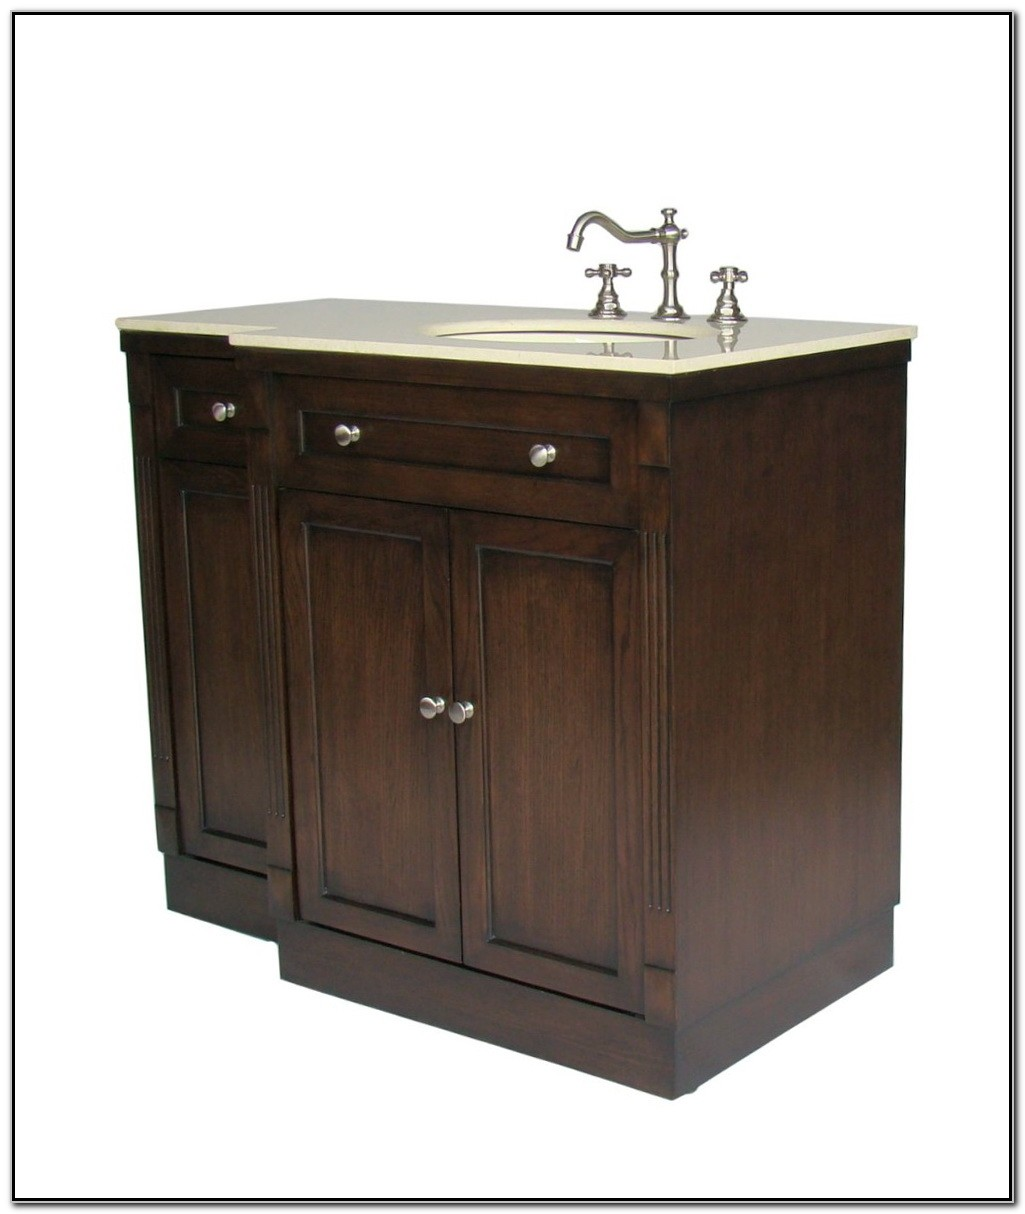 42 Inch Bathroom Vanity With Offset Sink - Sink And ...